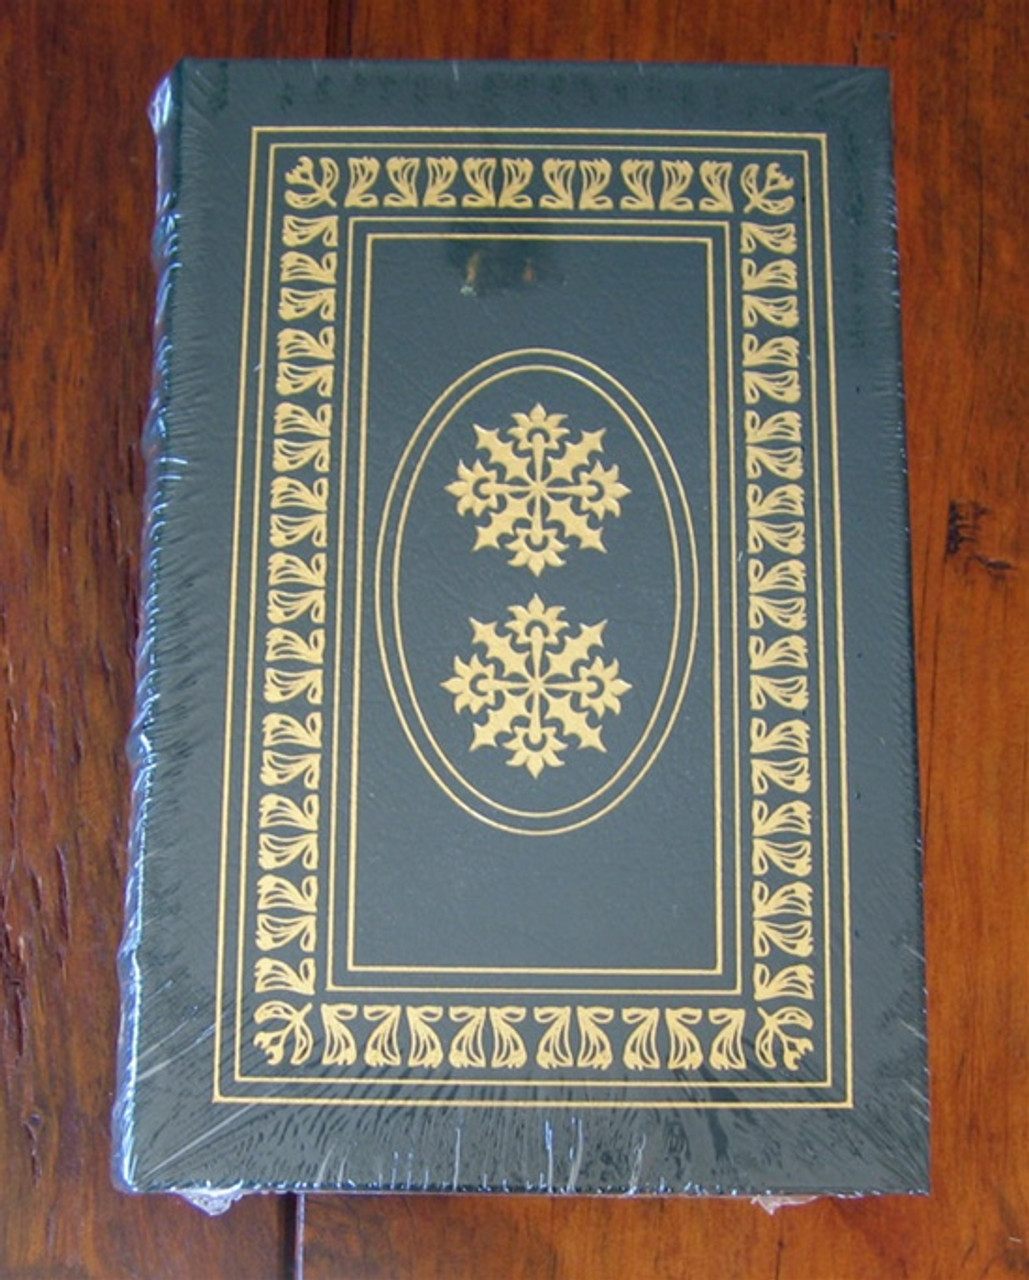 """Easton Press, Colleen McCullough """"The Thorn Birds"""" Signed Limited Edition, Sealed"""